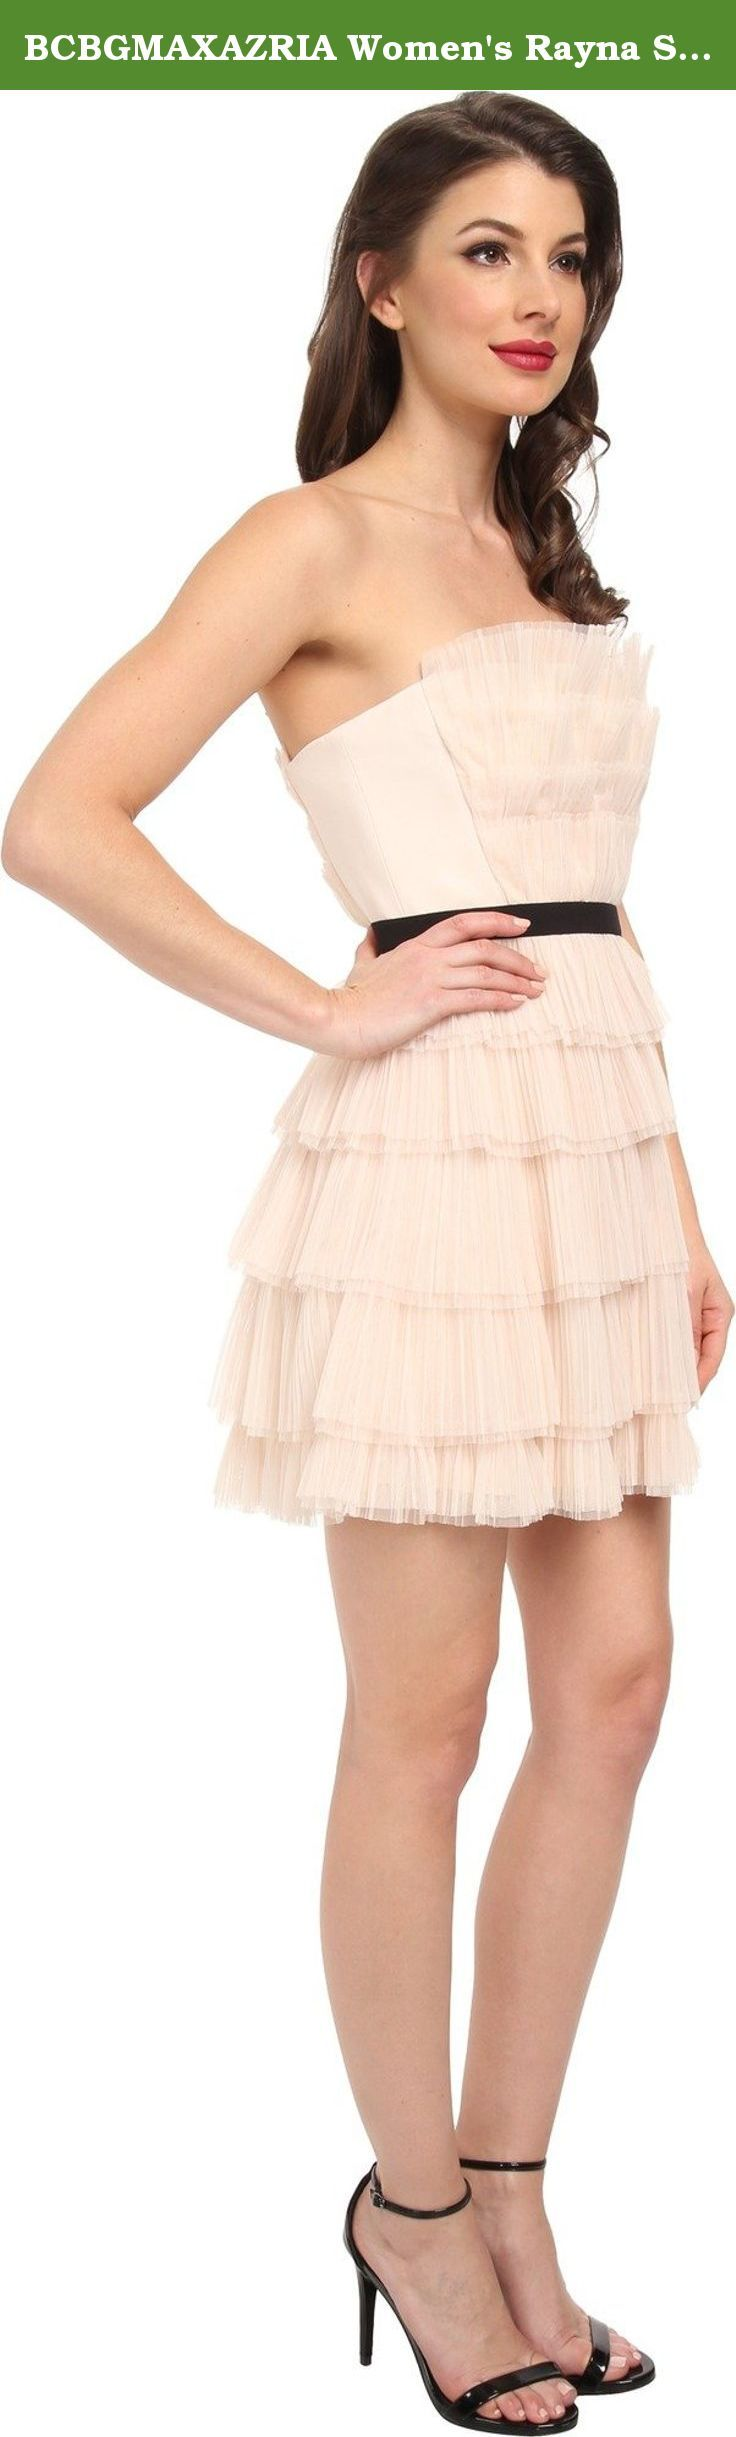 BCBGMAXAZRIA Women's Rayna Strapless Pleated Cocktail Dress, Vanilla, 8. Rich texture and dimension are created by the sophisticated pleating of this knockout dress.